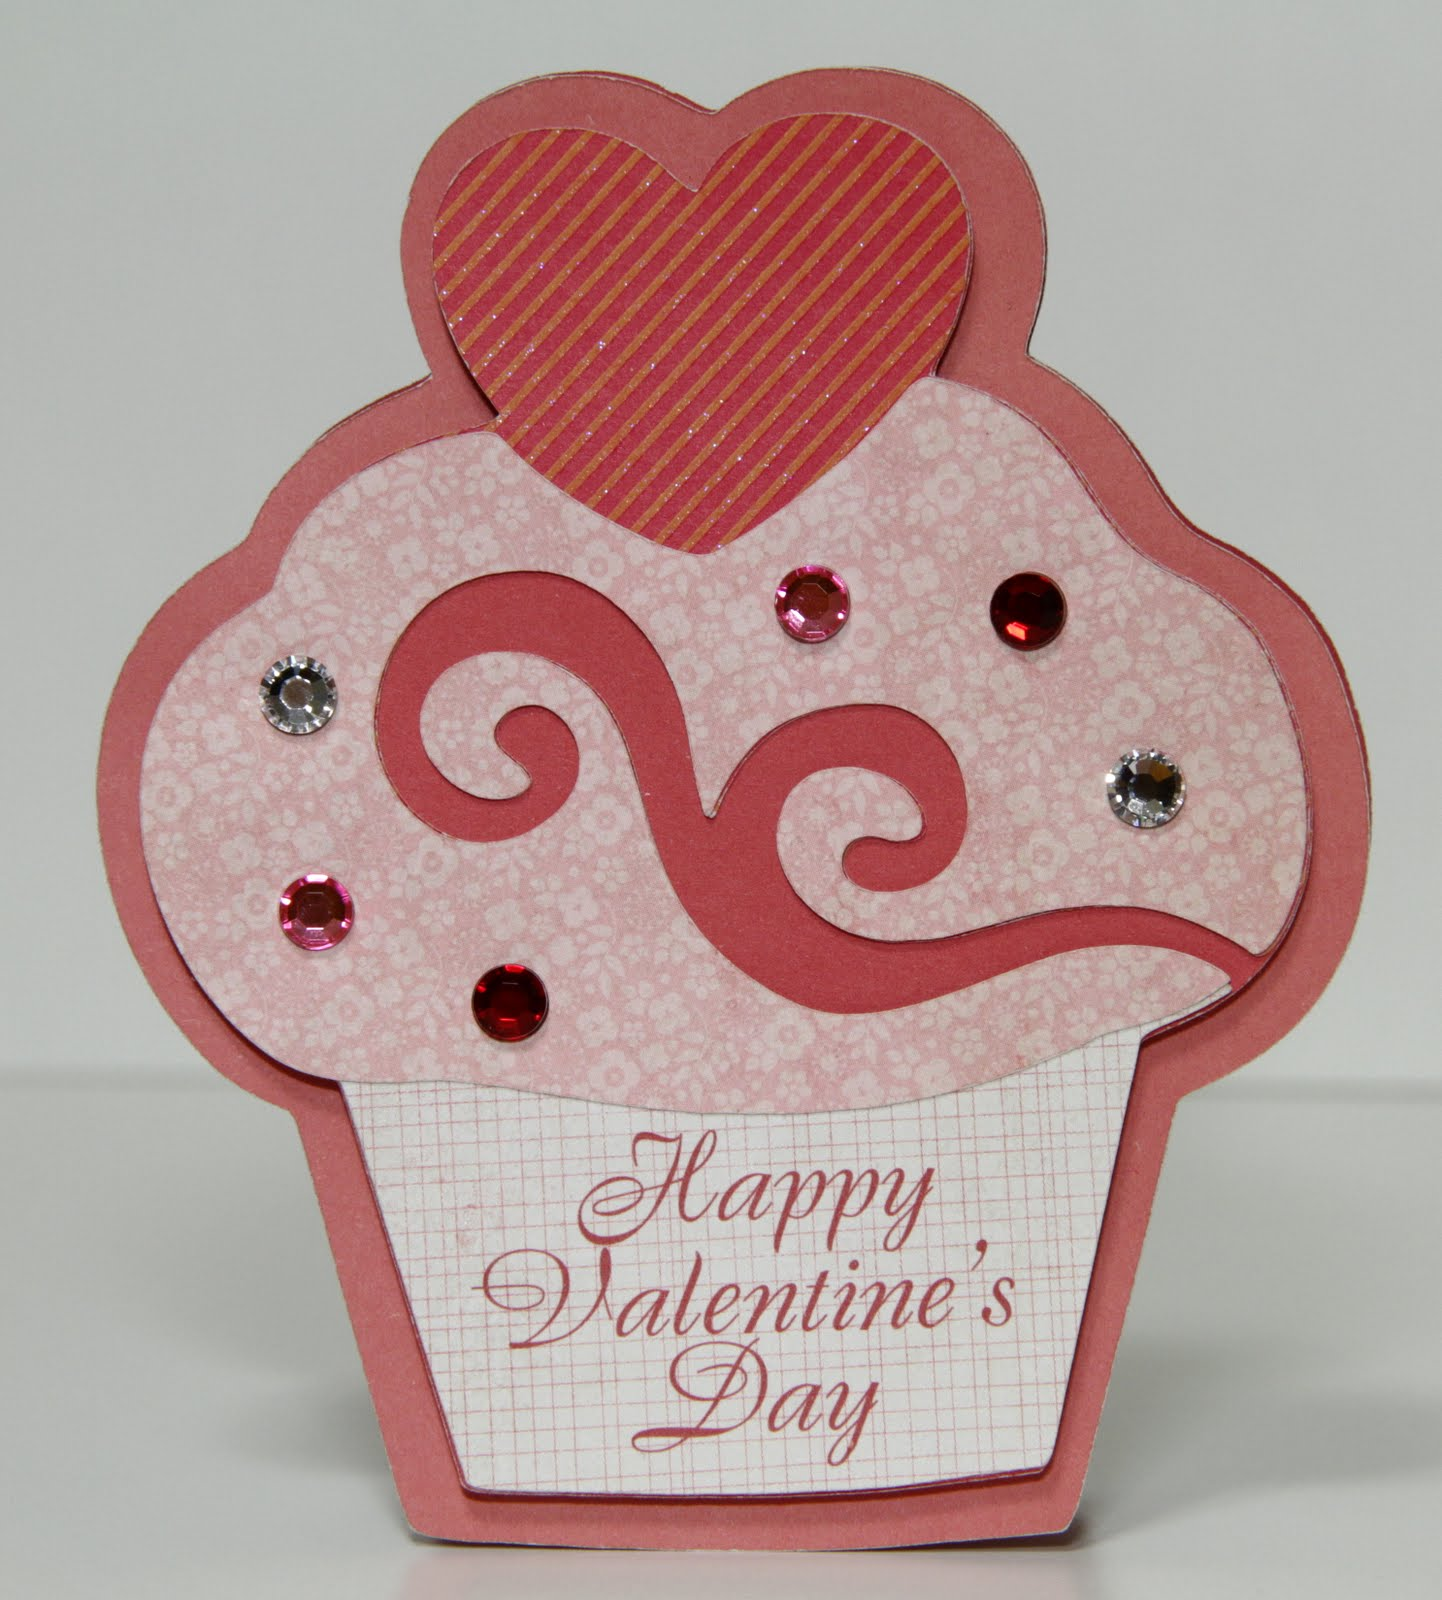 Homemade Valentine Cards – Make a Valentine Card